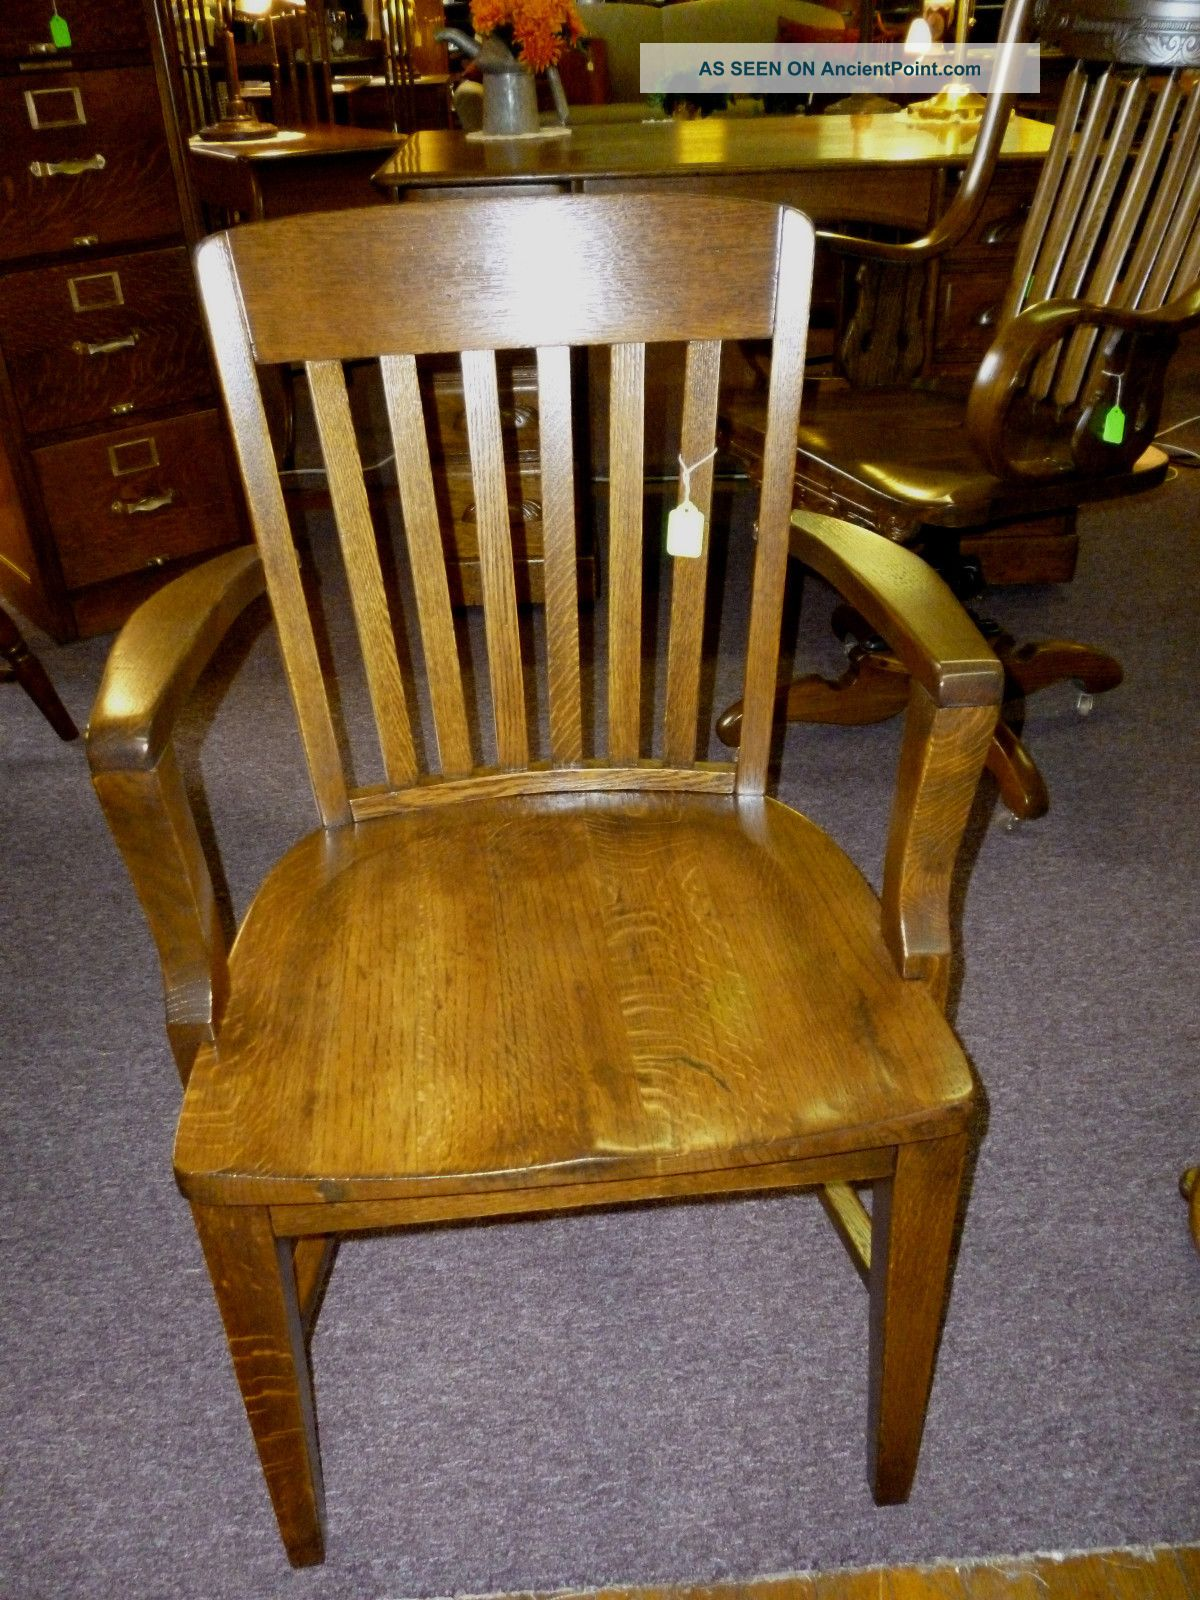 antique oak chair office armchair industrial refinished made in usa